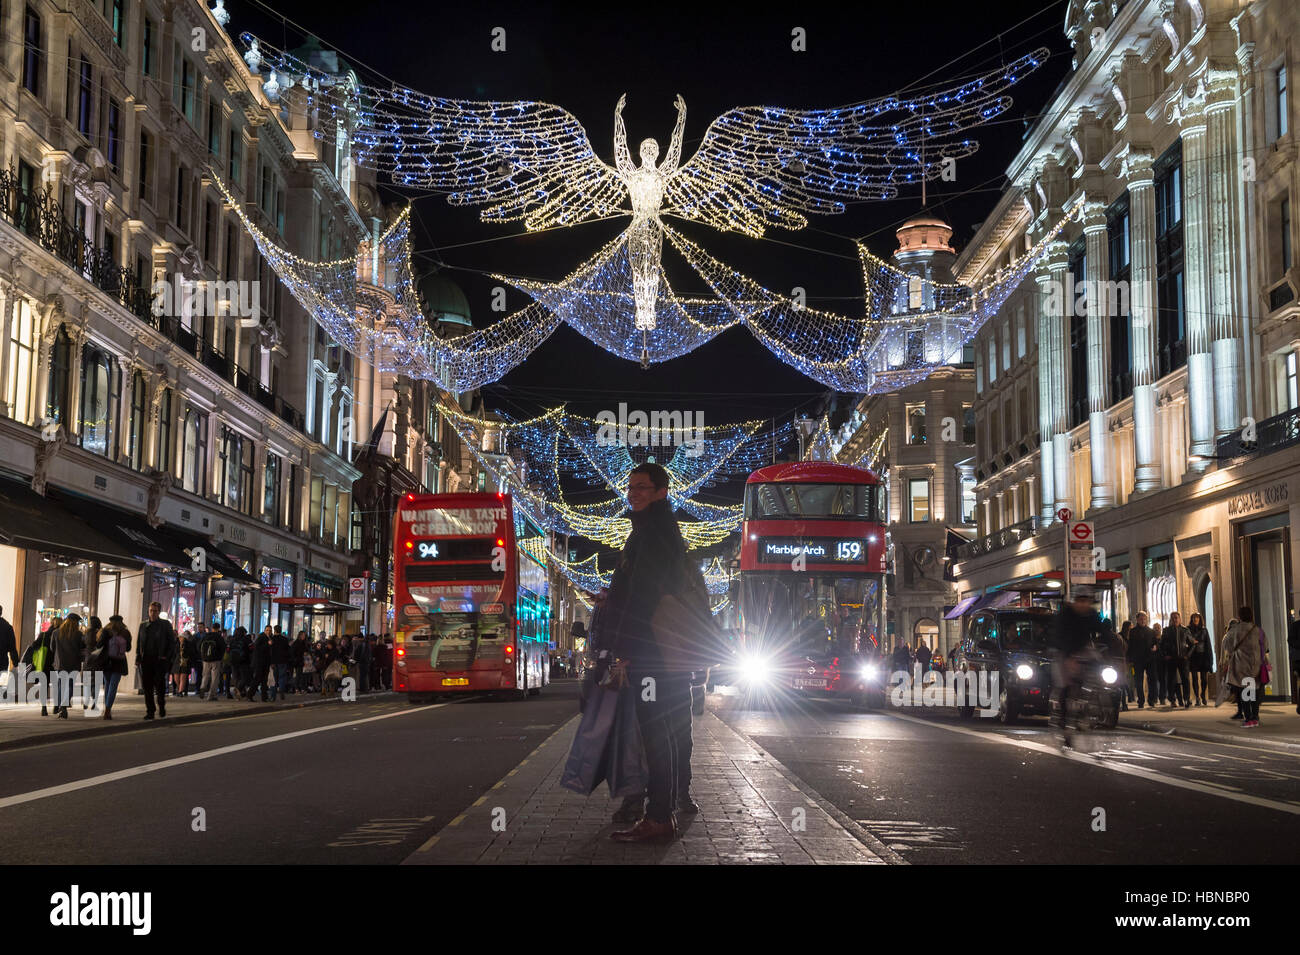 LONDON - DECEMBER 4, 2016: A pedestrian stops in the traffic median under twinkling Christmas angels lighting up - Stock Image